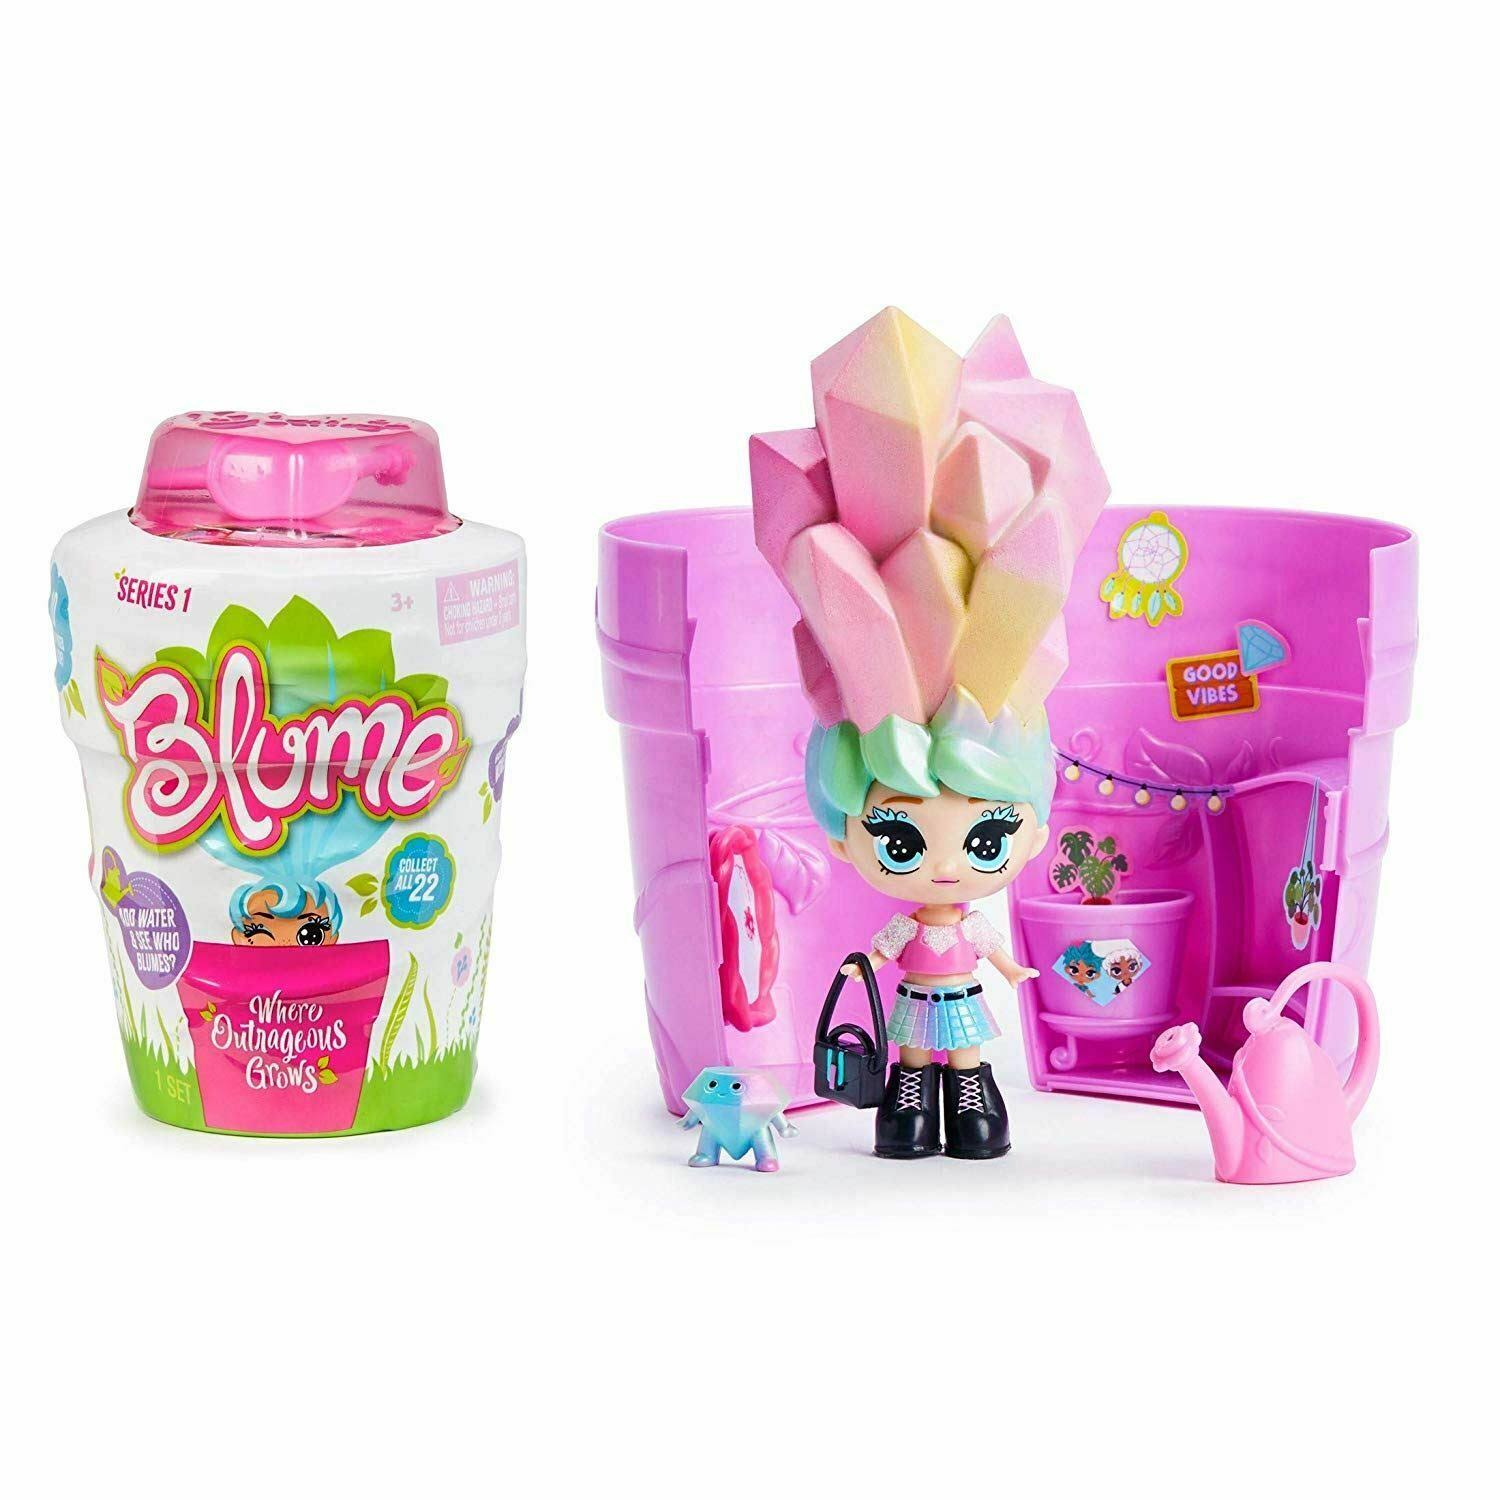 Blume Series 1 Surprise Growing Doll Toy